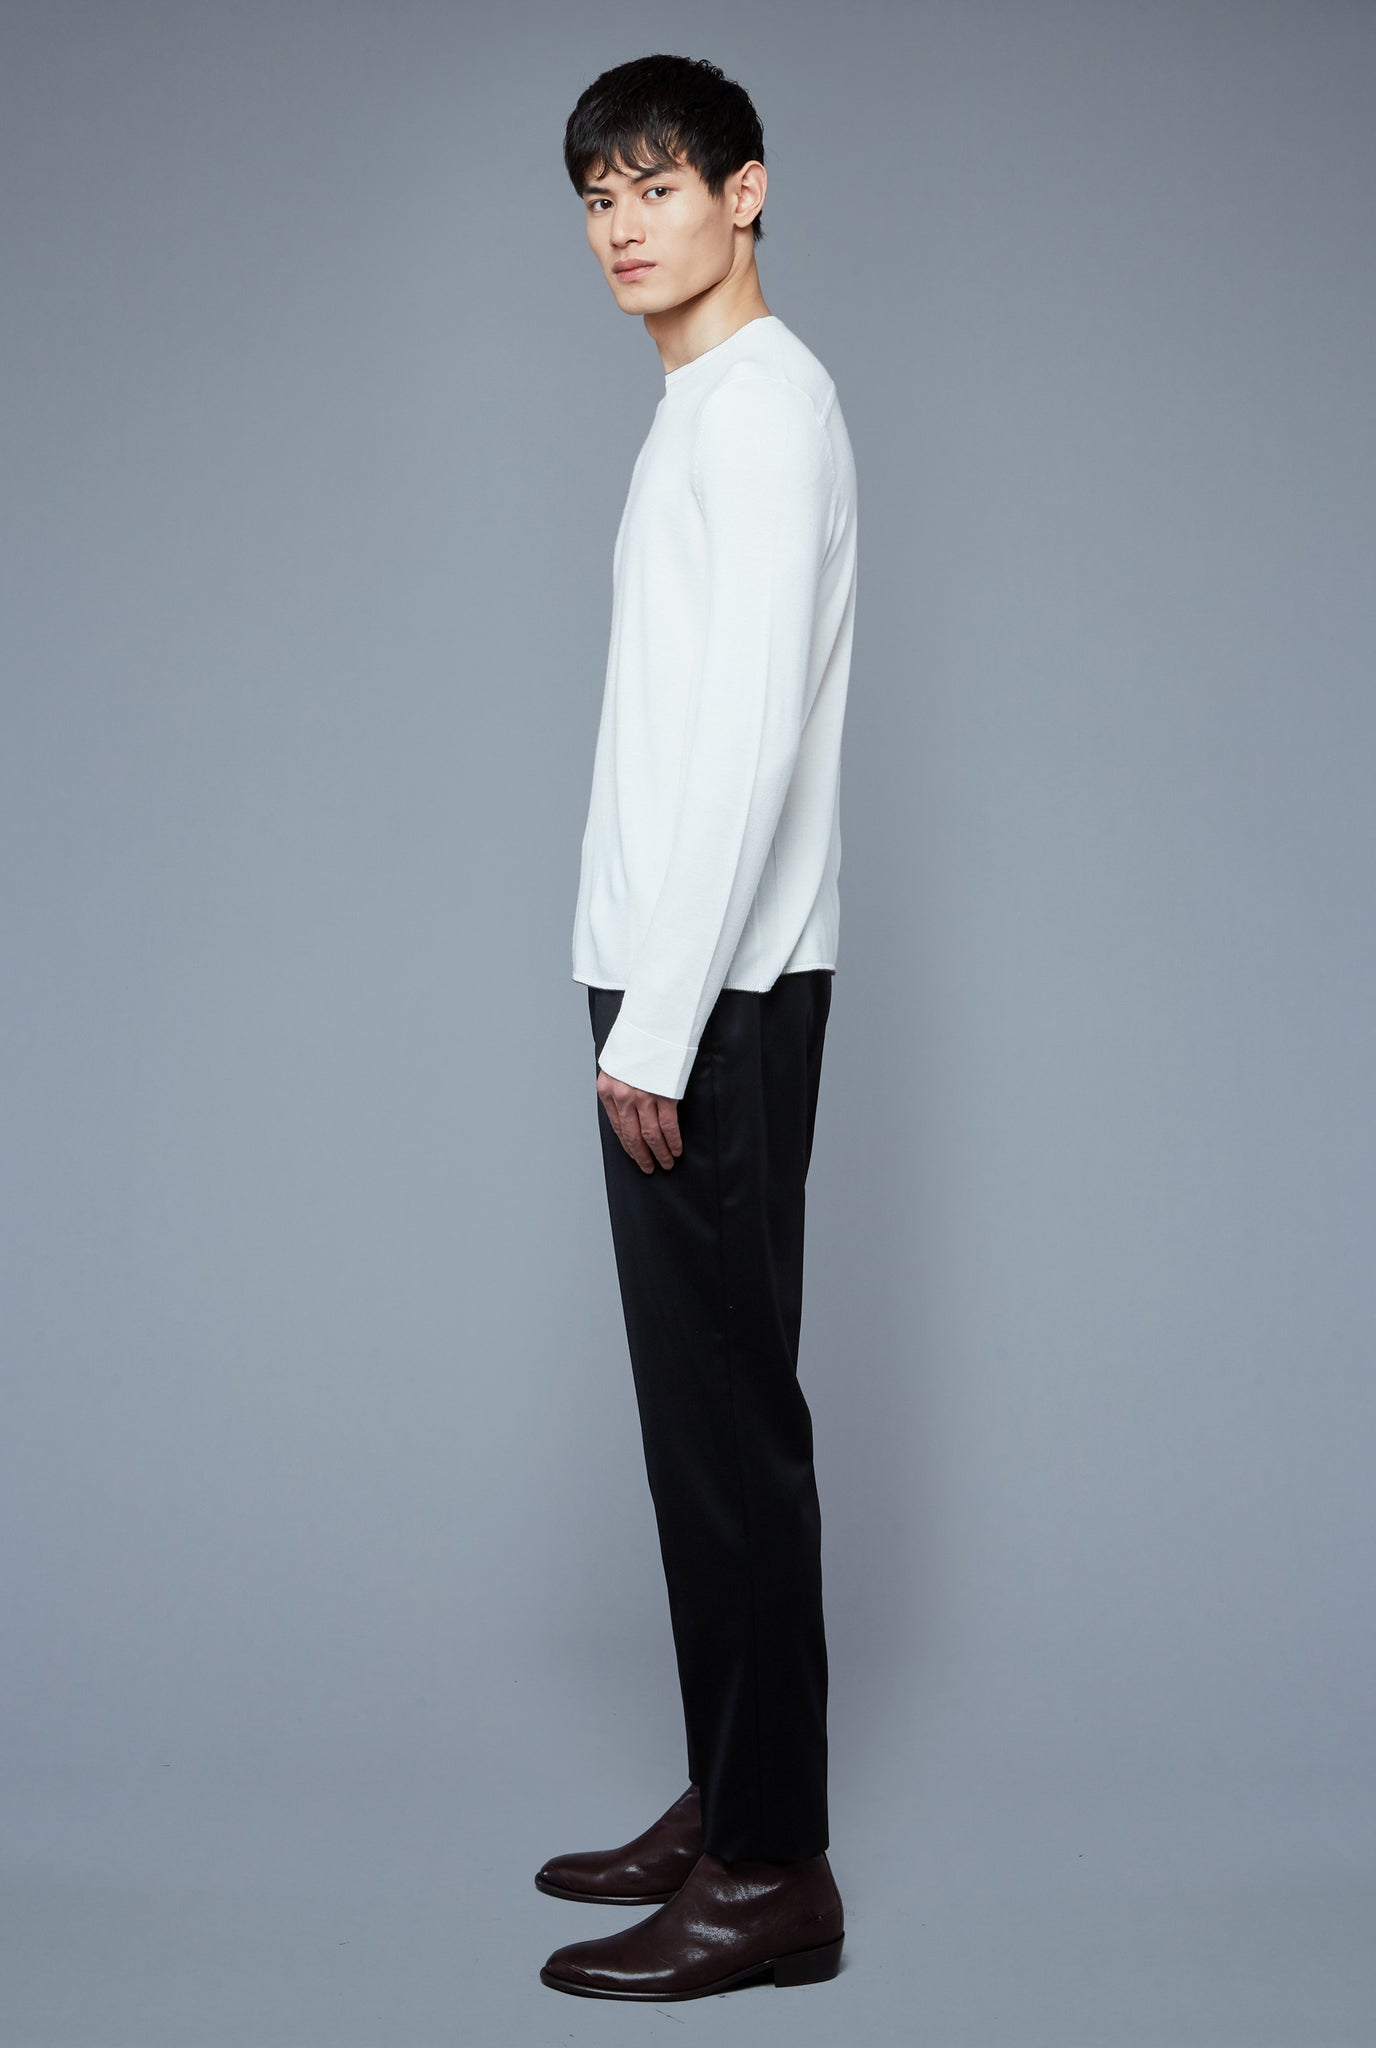 Side View: Model Qiang Li wearing Long Sleeve Sweater Tee